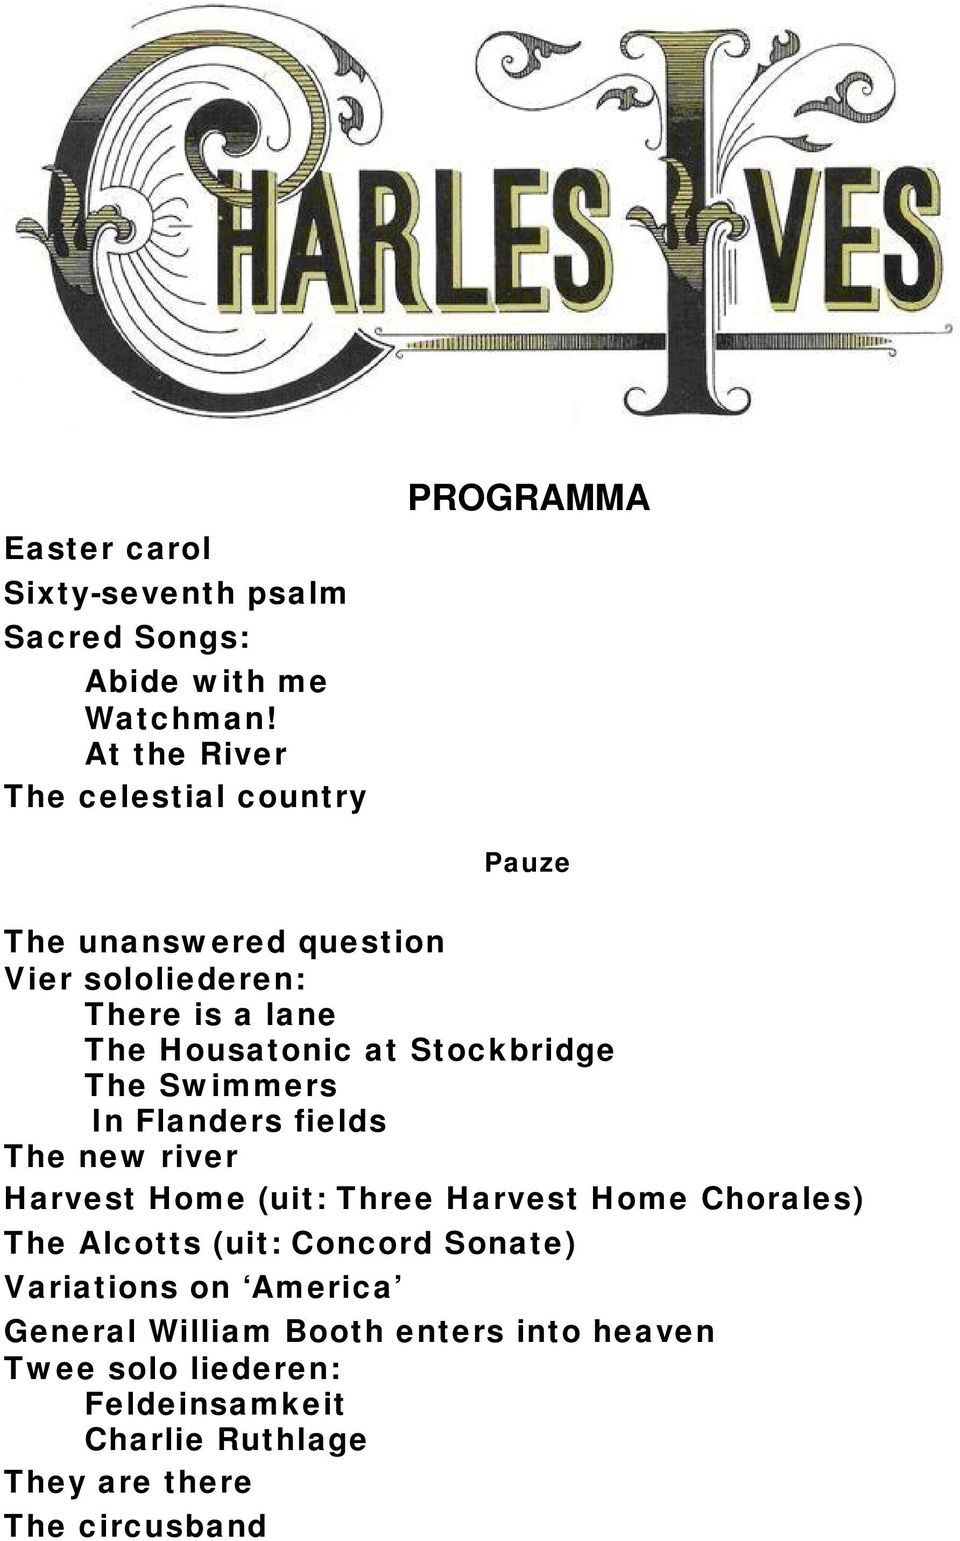 Housatonic at Stockbridge The Swimmers In Flanders fields The new river Harvest Home (uit: Three Harvest Home Chorales)